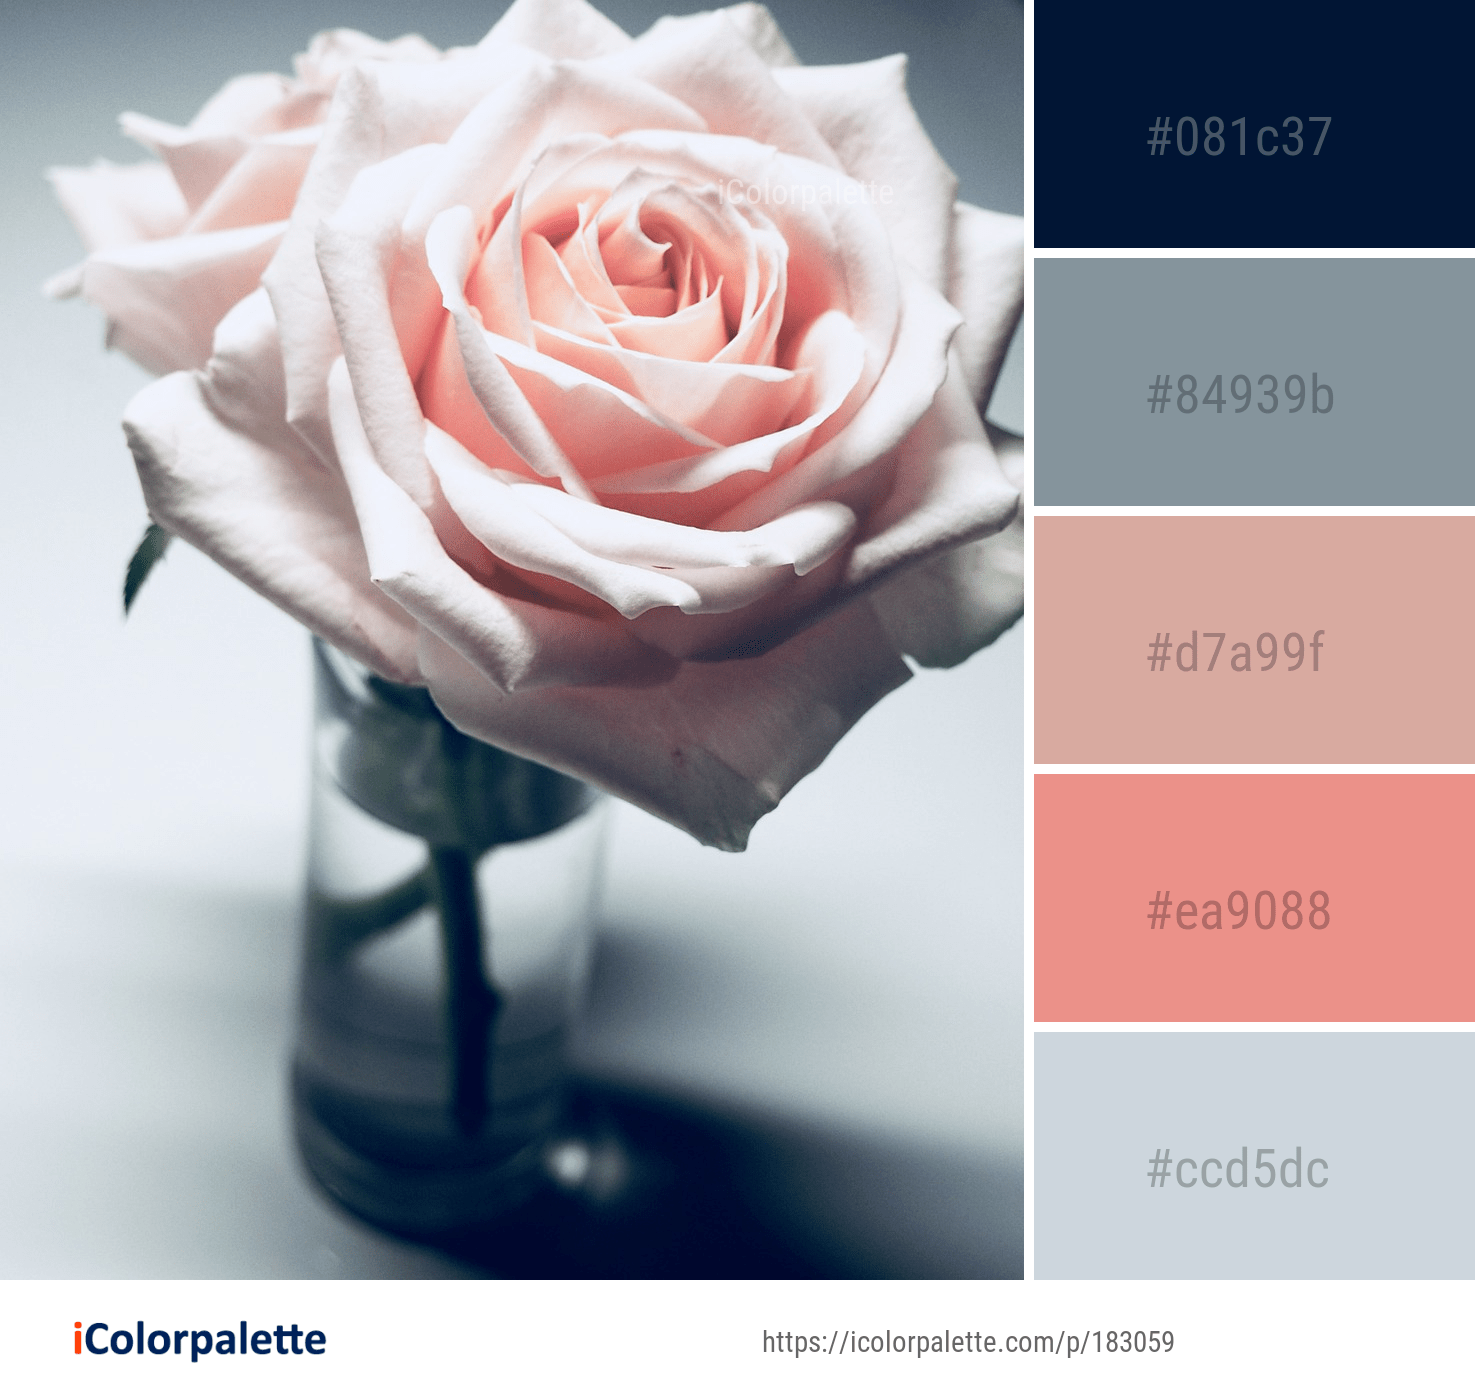 Color Palette Ideas From 5017 Flower Images Icolorpalette Rose Flower Colors Hex Color Palette Flower Background Wallpaper